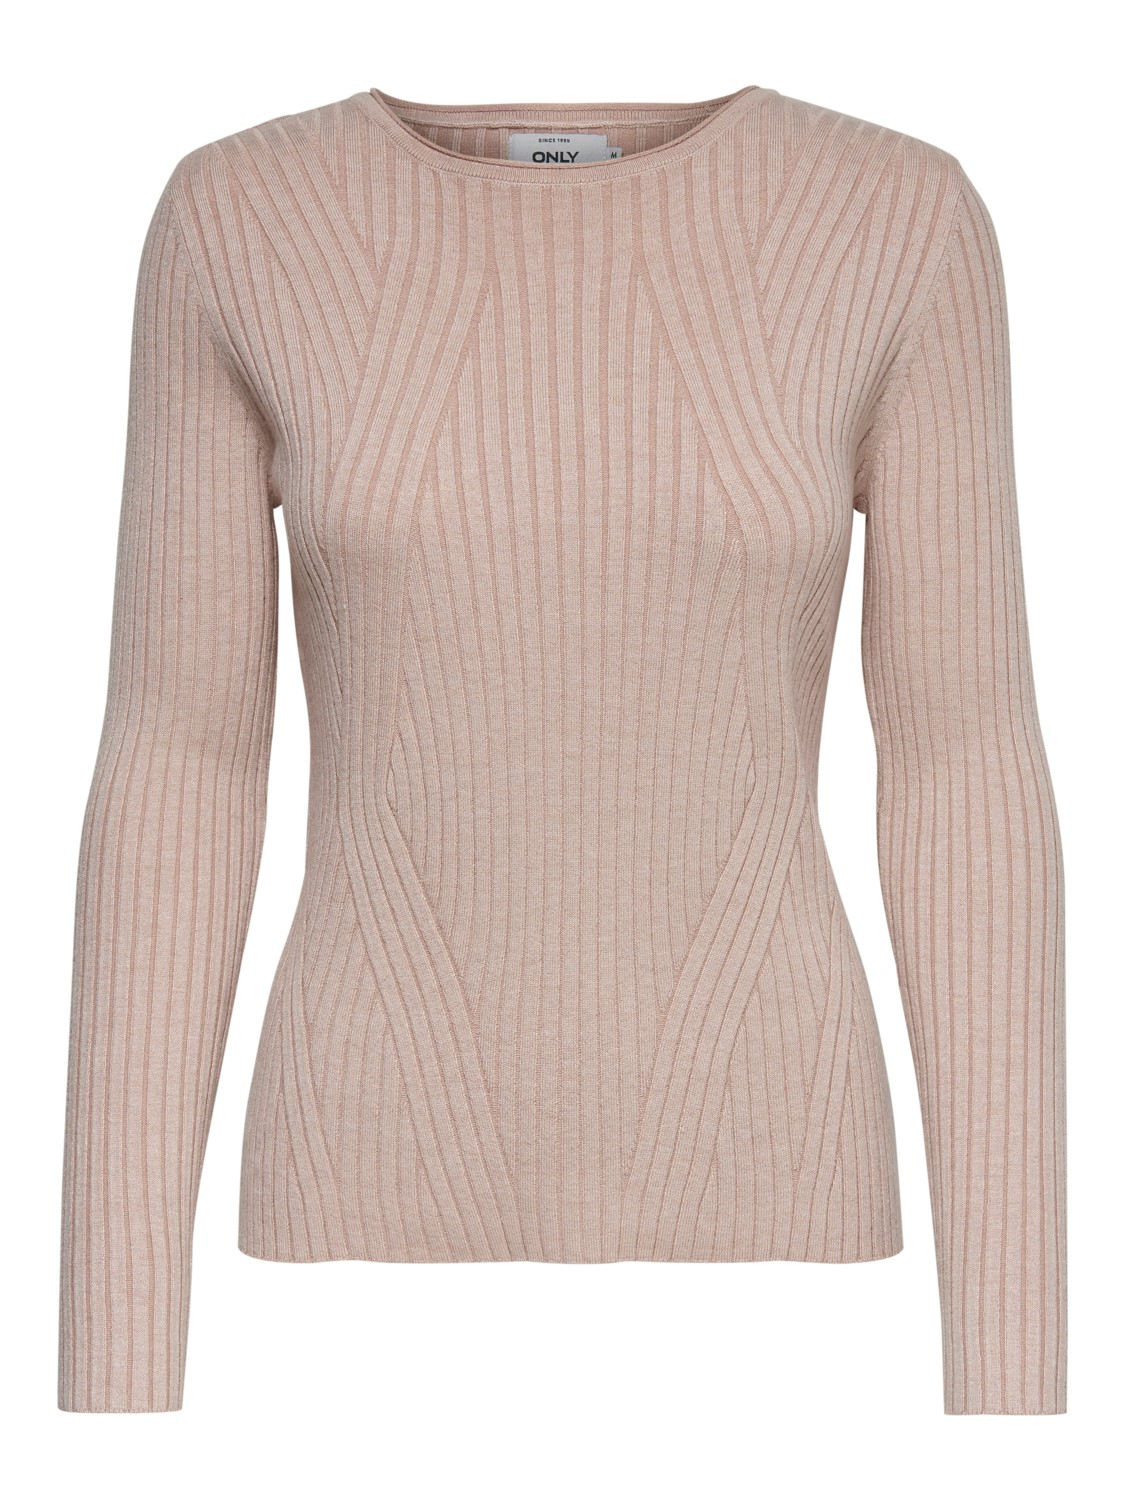 In-Mood Natalia Knit